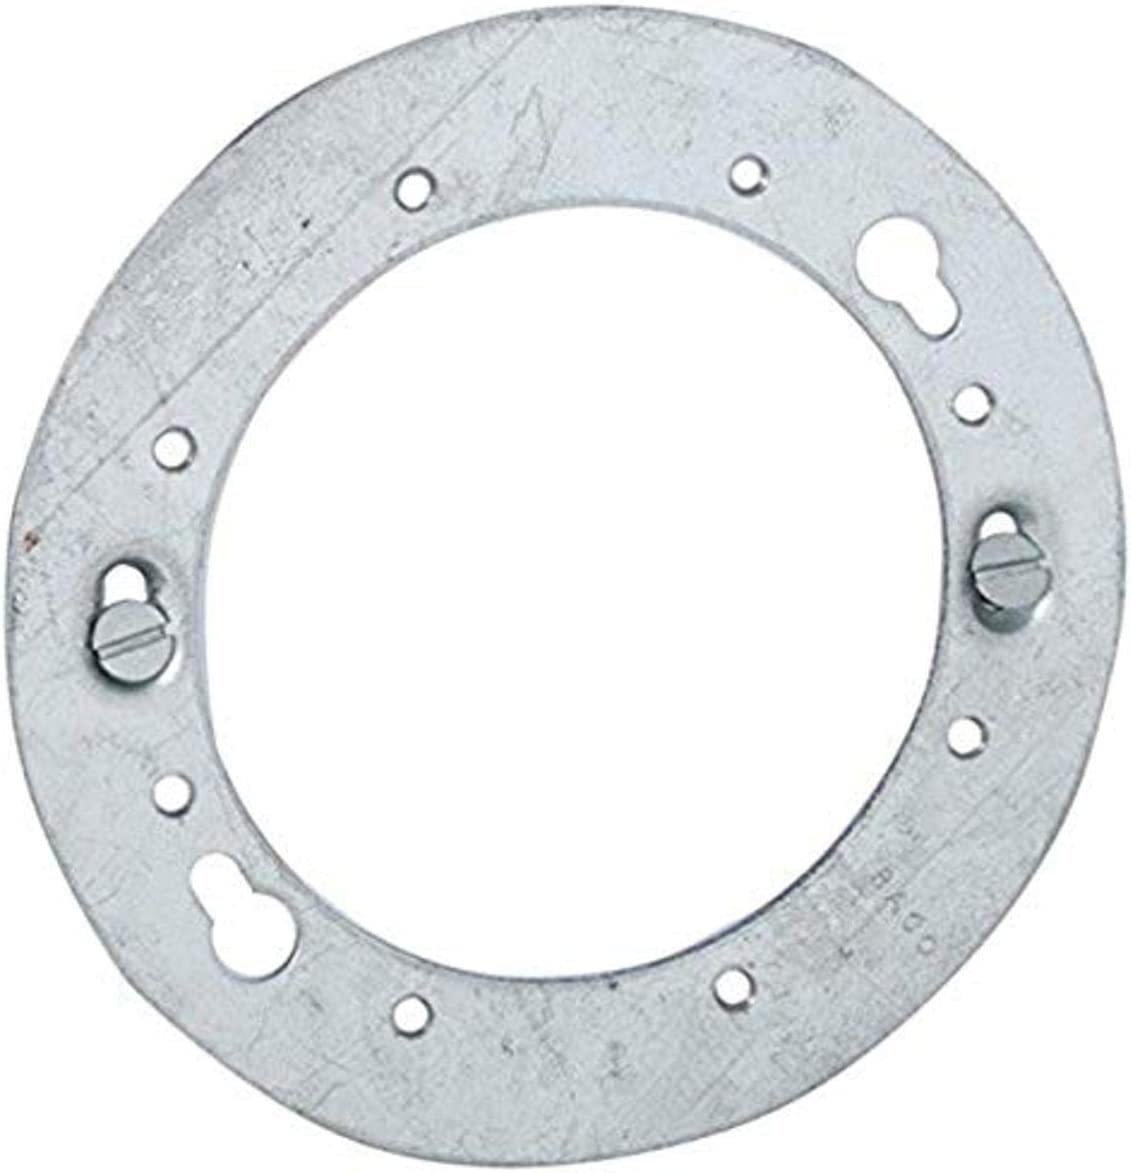 Hubbell-Raco 893 Concrete Ring Round Adaptor Plate Pack of 50